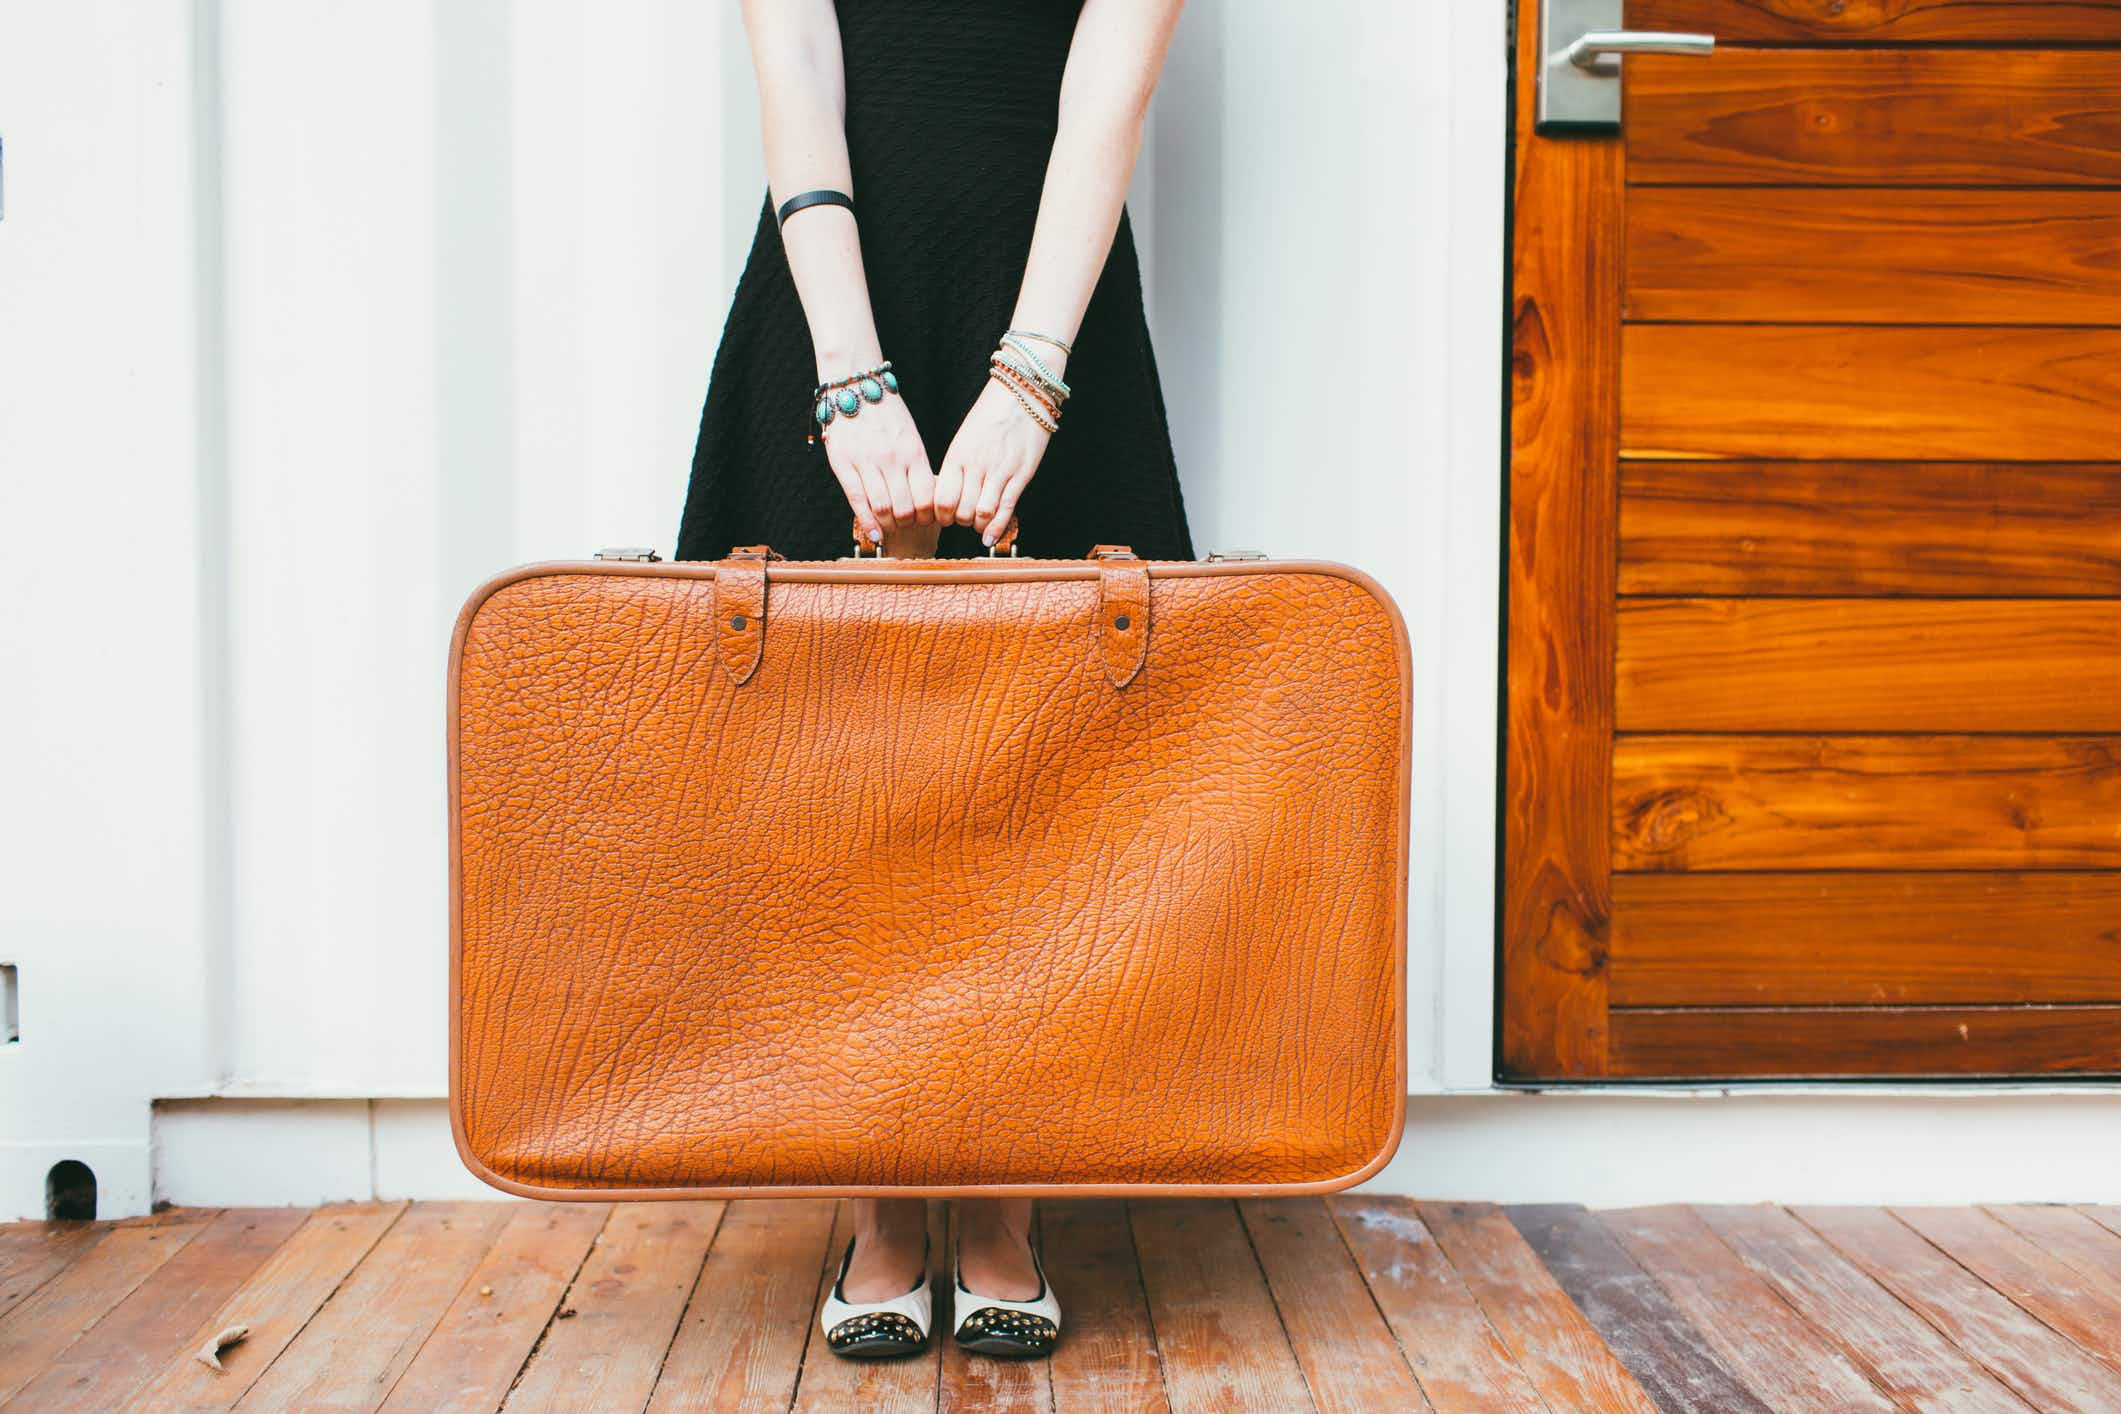 Expert advice on what to do if your luggage is lost